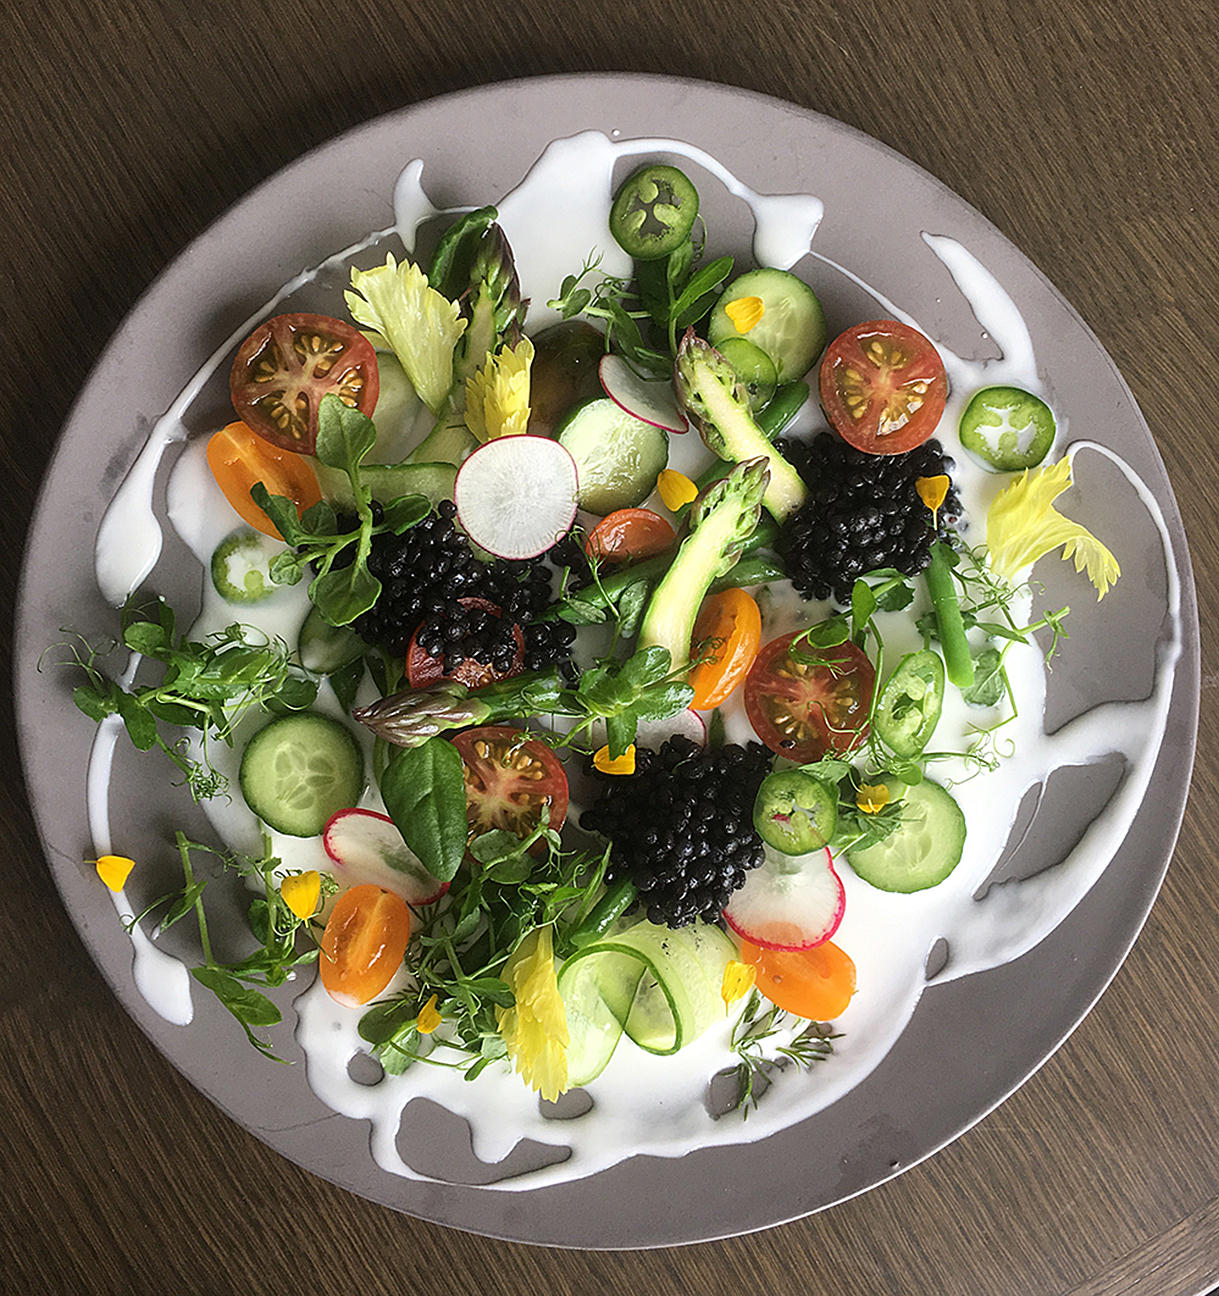 kefir-salad From the KITCHEN: SUMMER VEGETABLE SALAD WITH LENTILS AND FIVE ACRE FARMS HONEY KEFIR